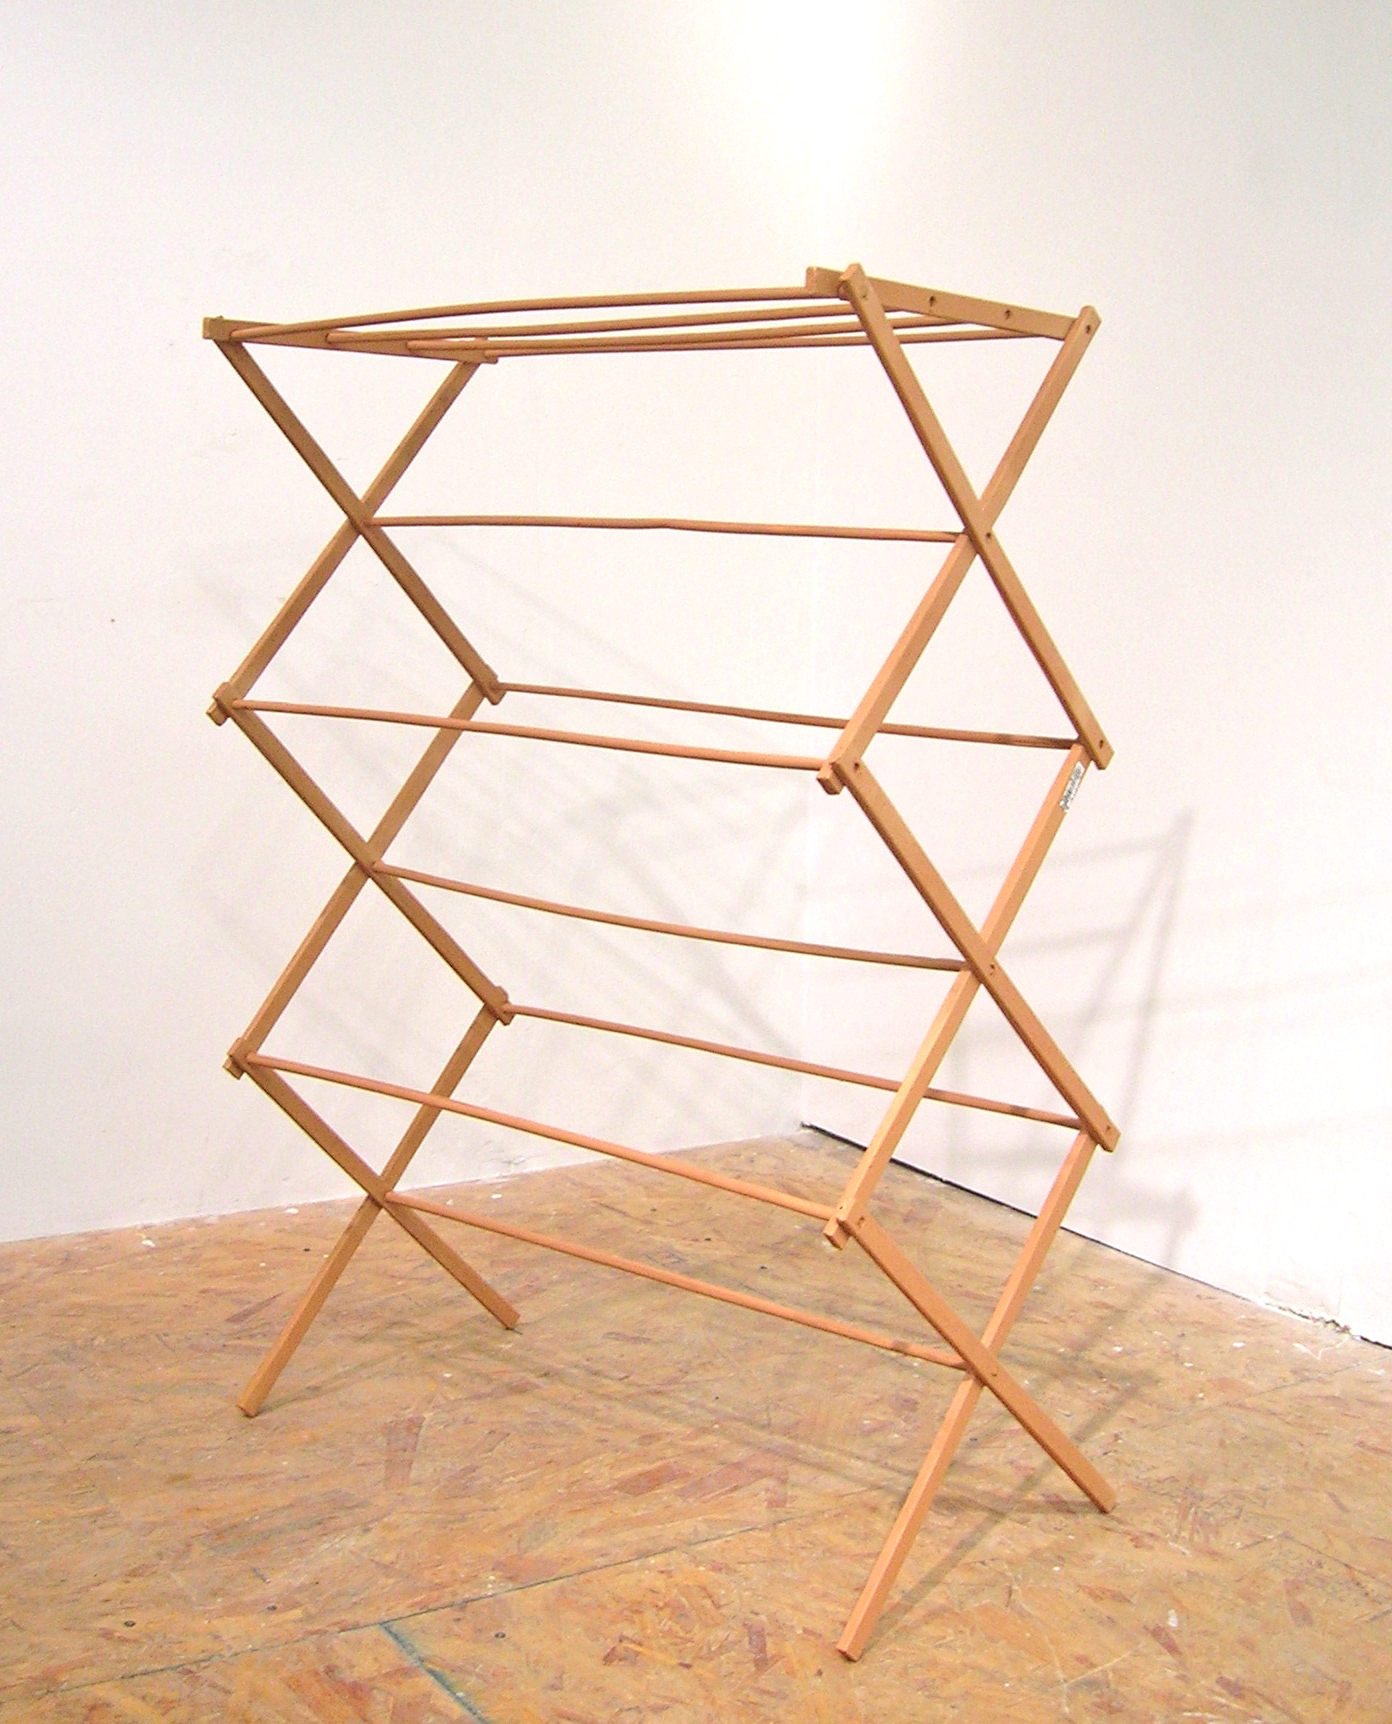 "Drying Rack, 2015, Acrylic on cast polyurethane, 48"" x 20"" x 38"""